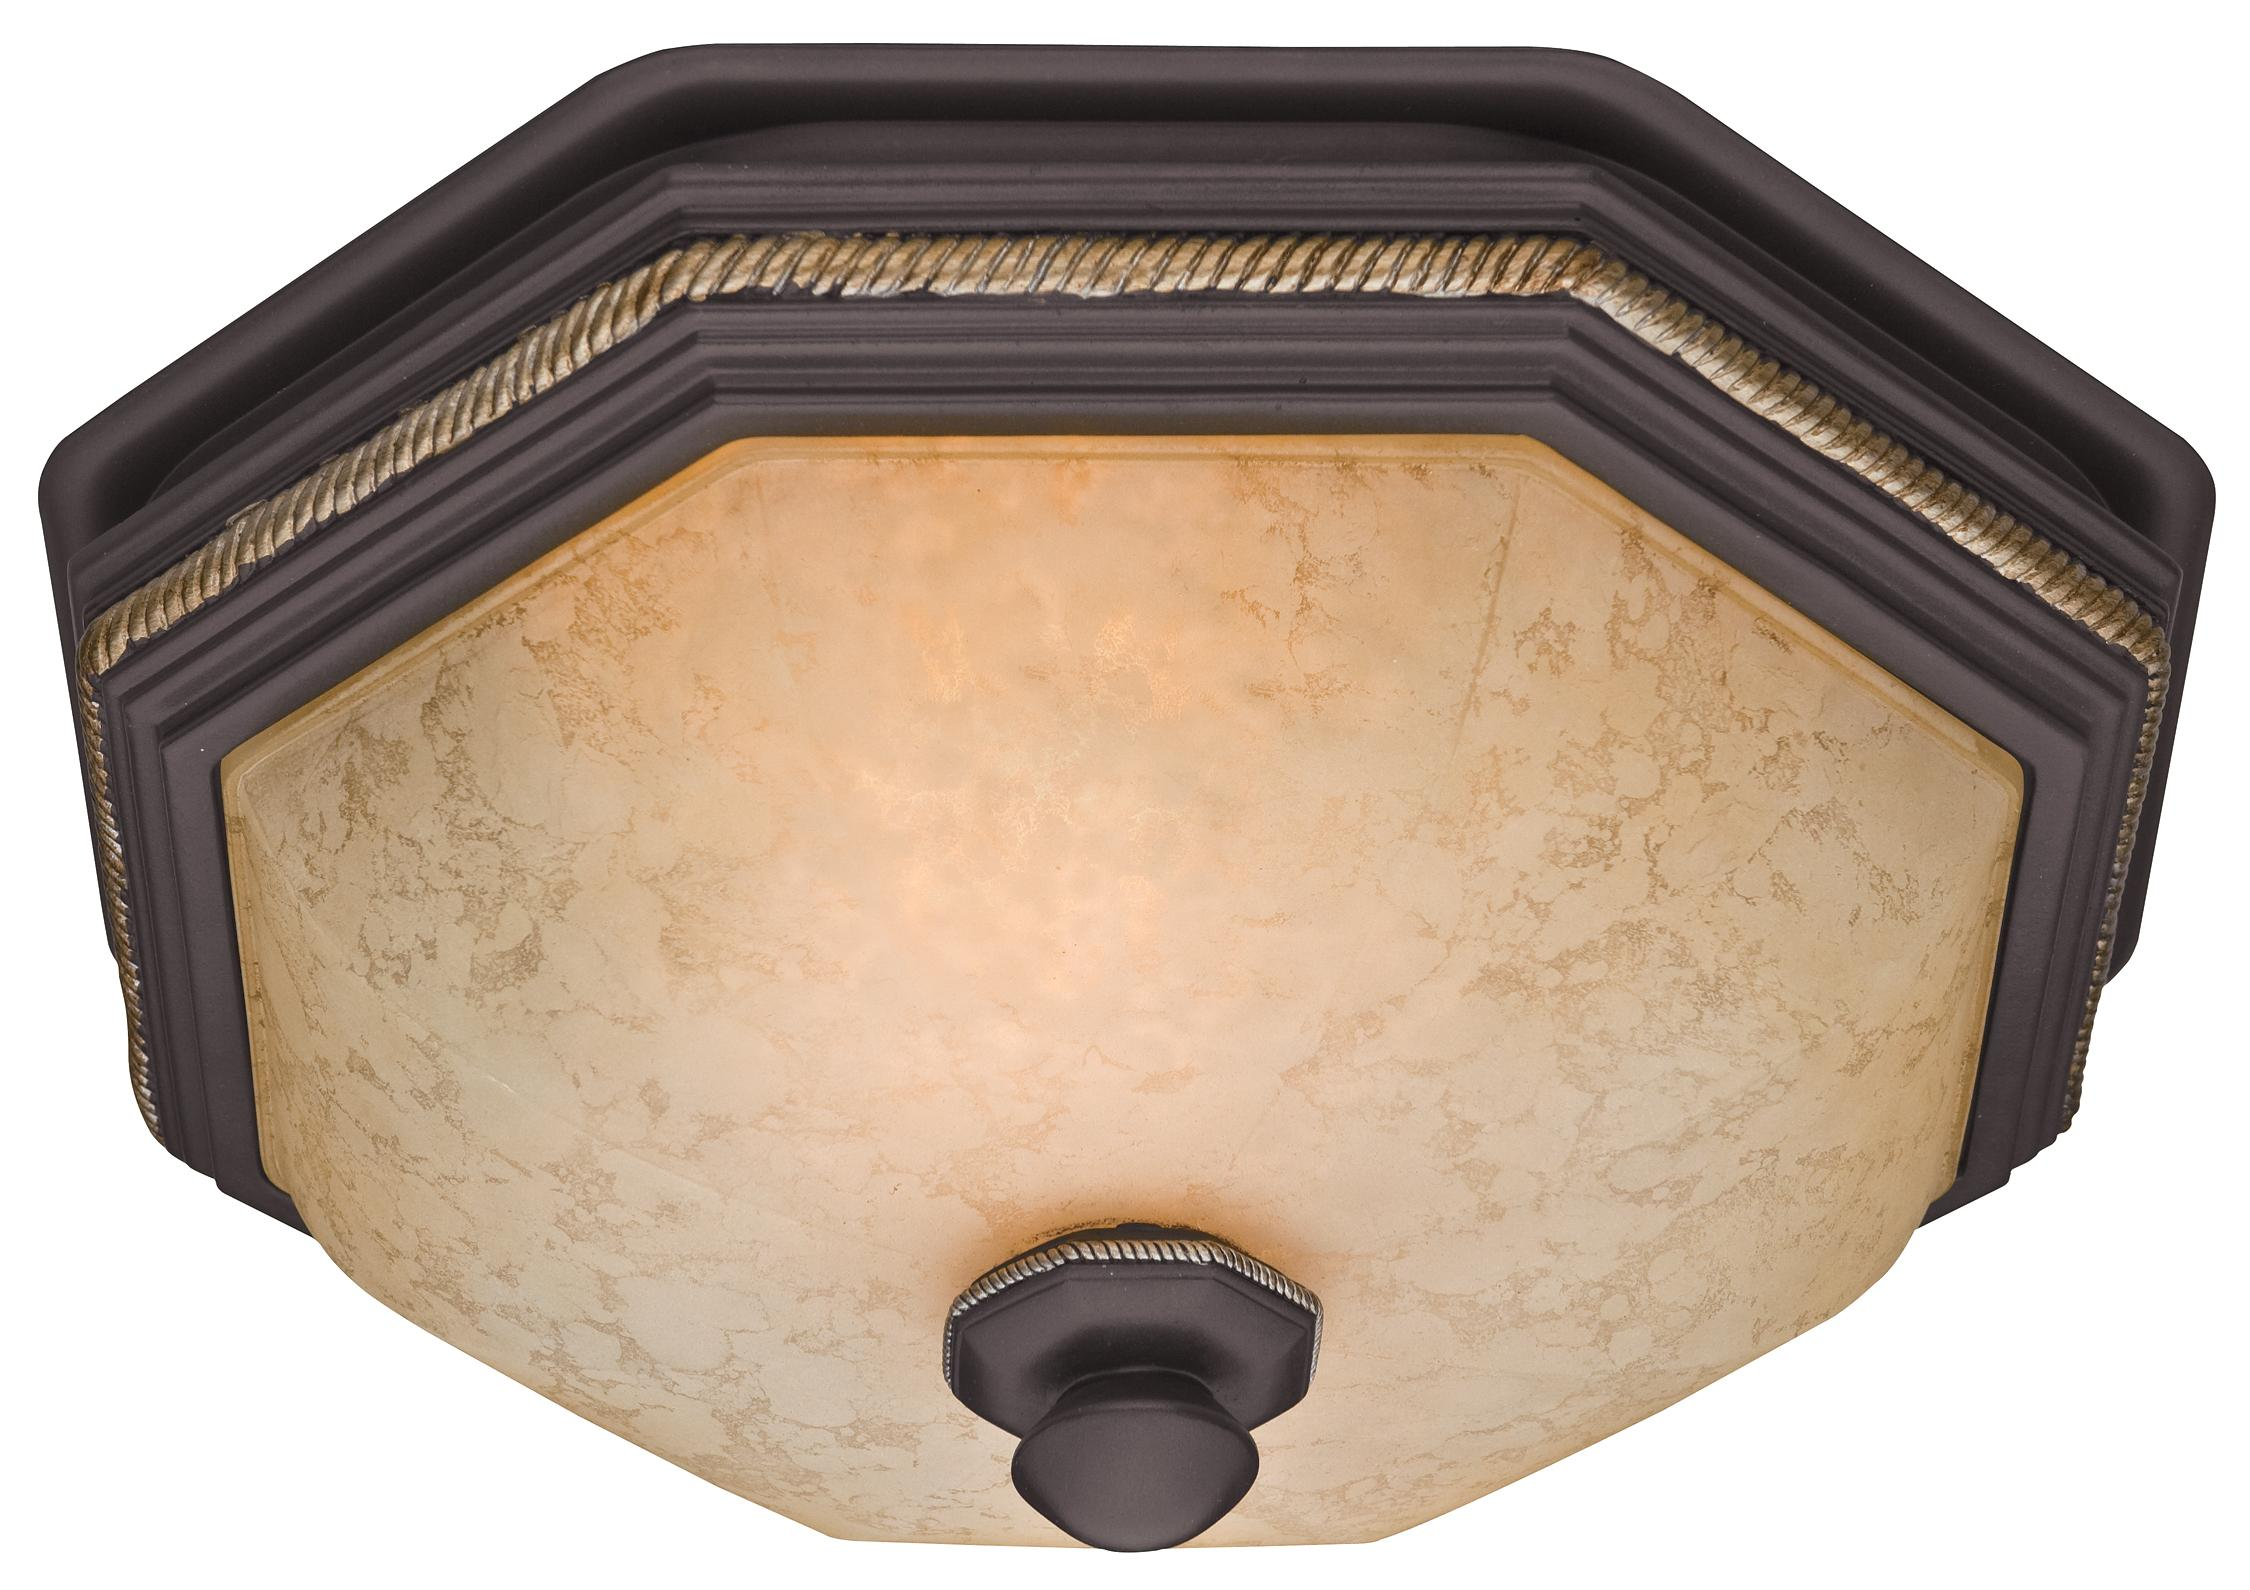 Amazoncom Hunter Ventilation Belle Meade Bathroom Exhaust - Bathroom exhaust fan with heat lamp for bathroom decor ideas